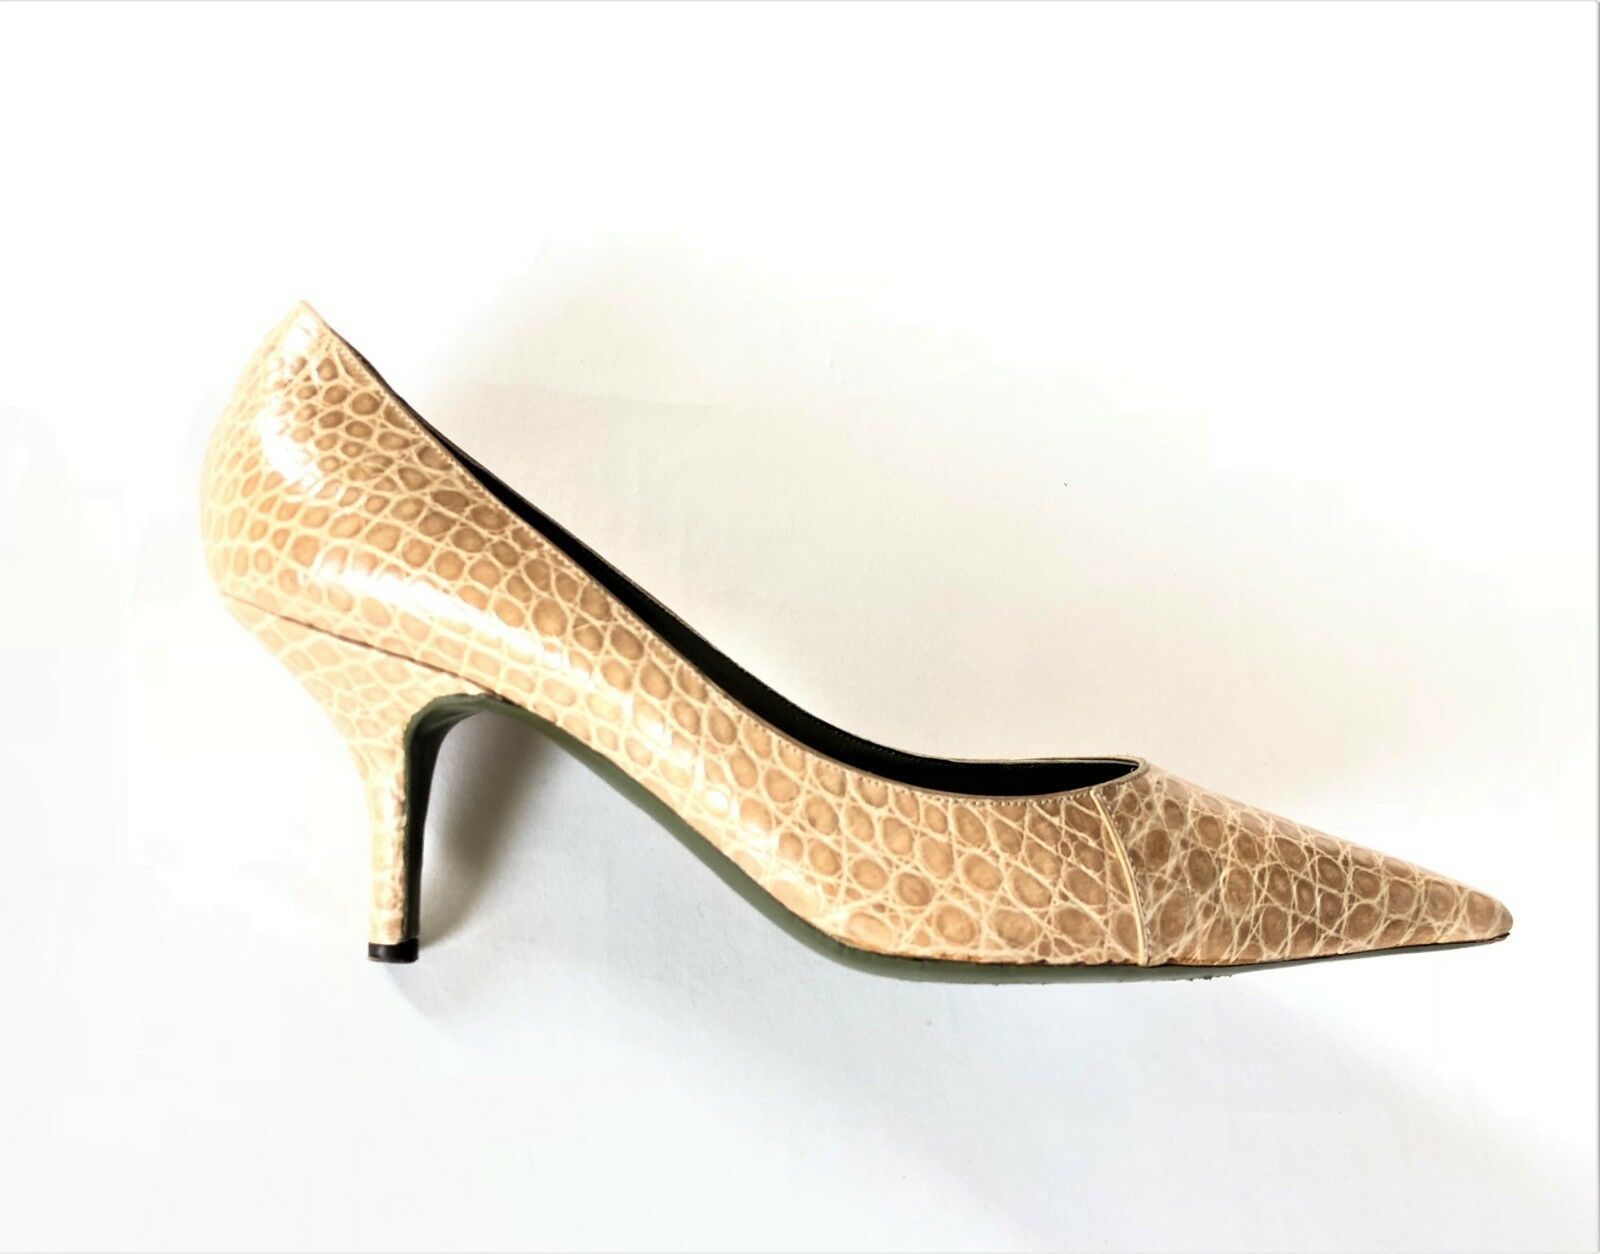 ERNESTO ESPOSITO camel croco embossed leather pumps size 39,5 shoes